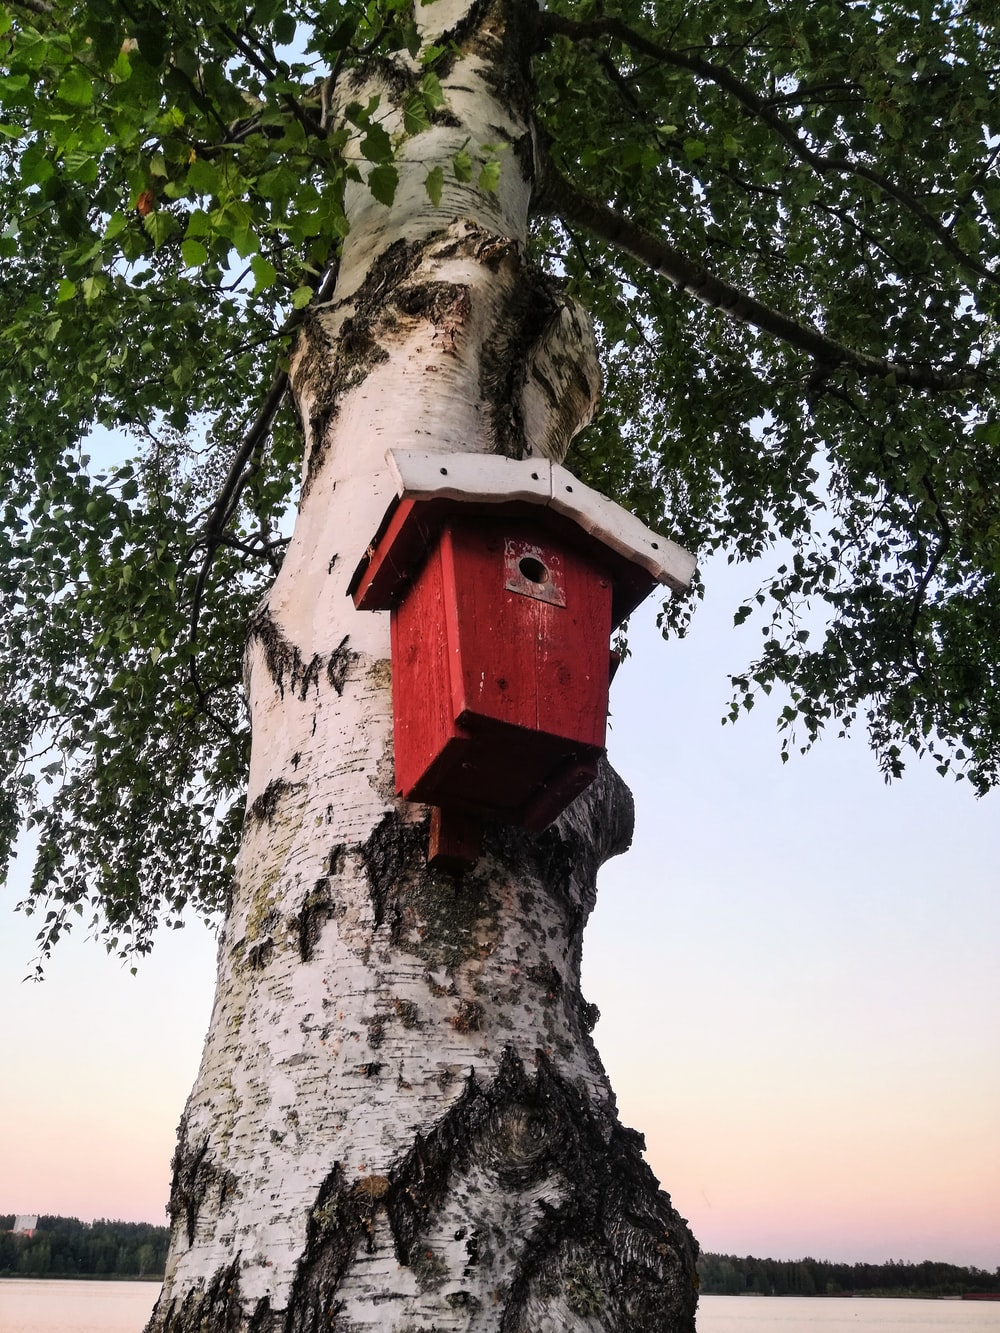 red and white wooden birdhouse on tree